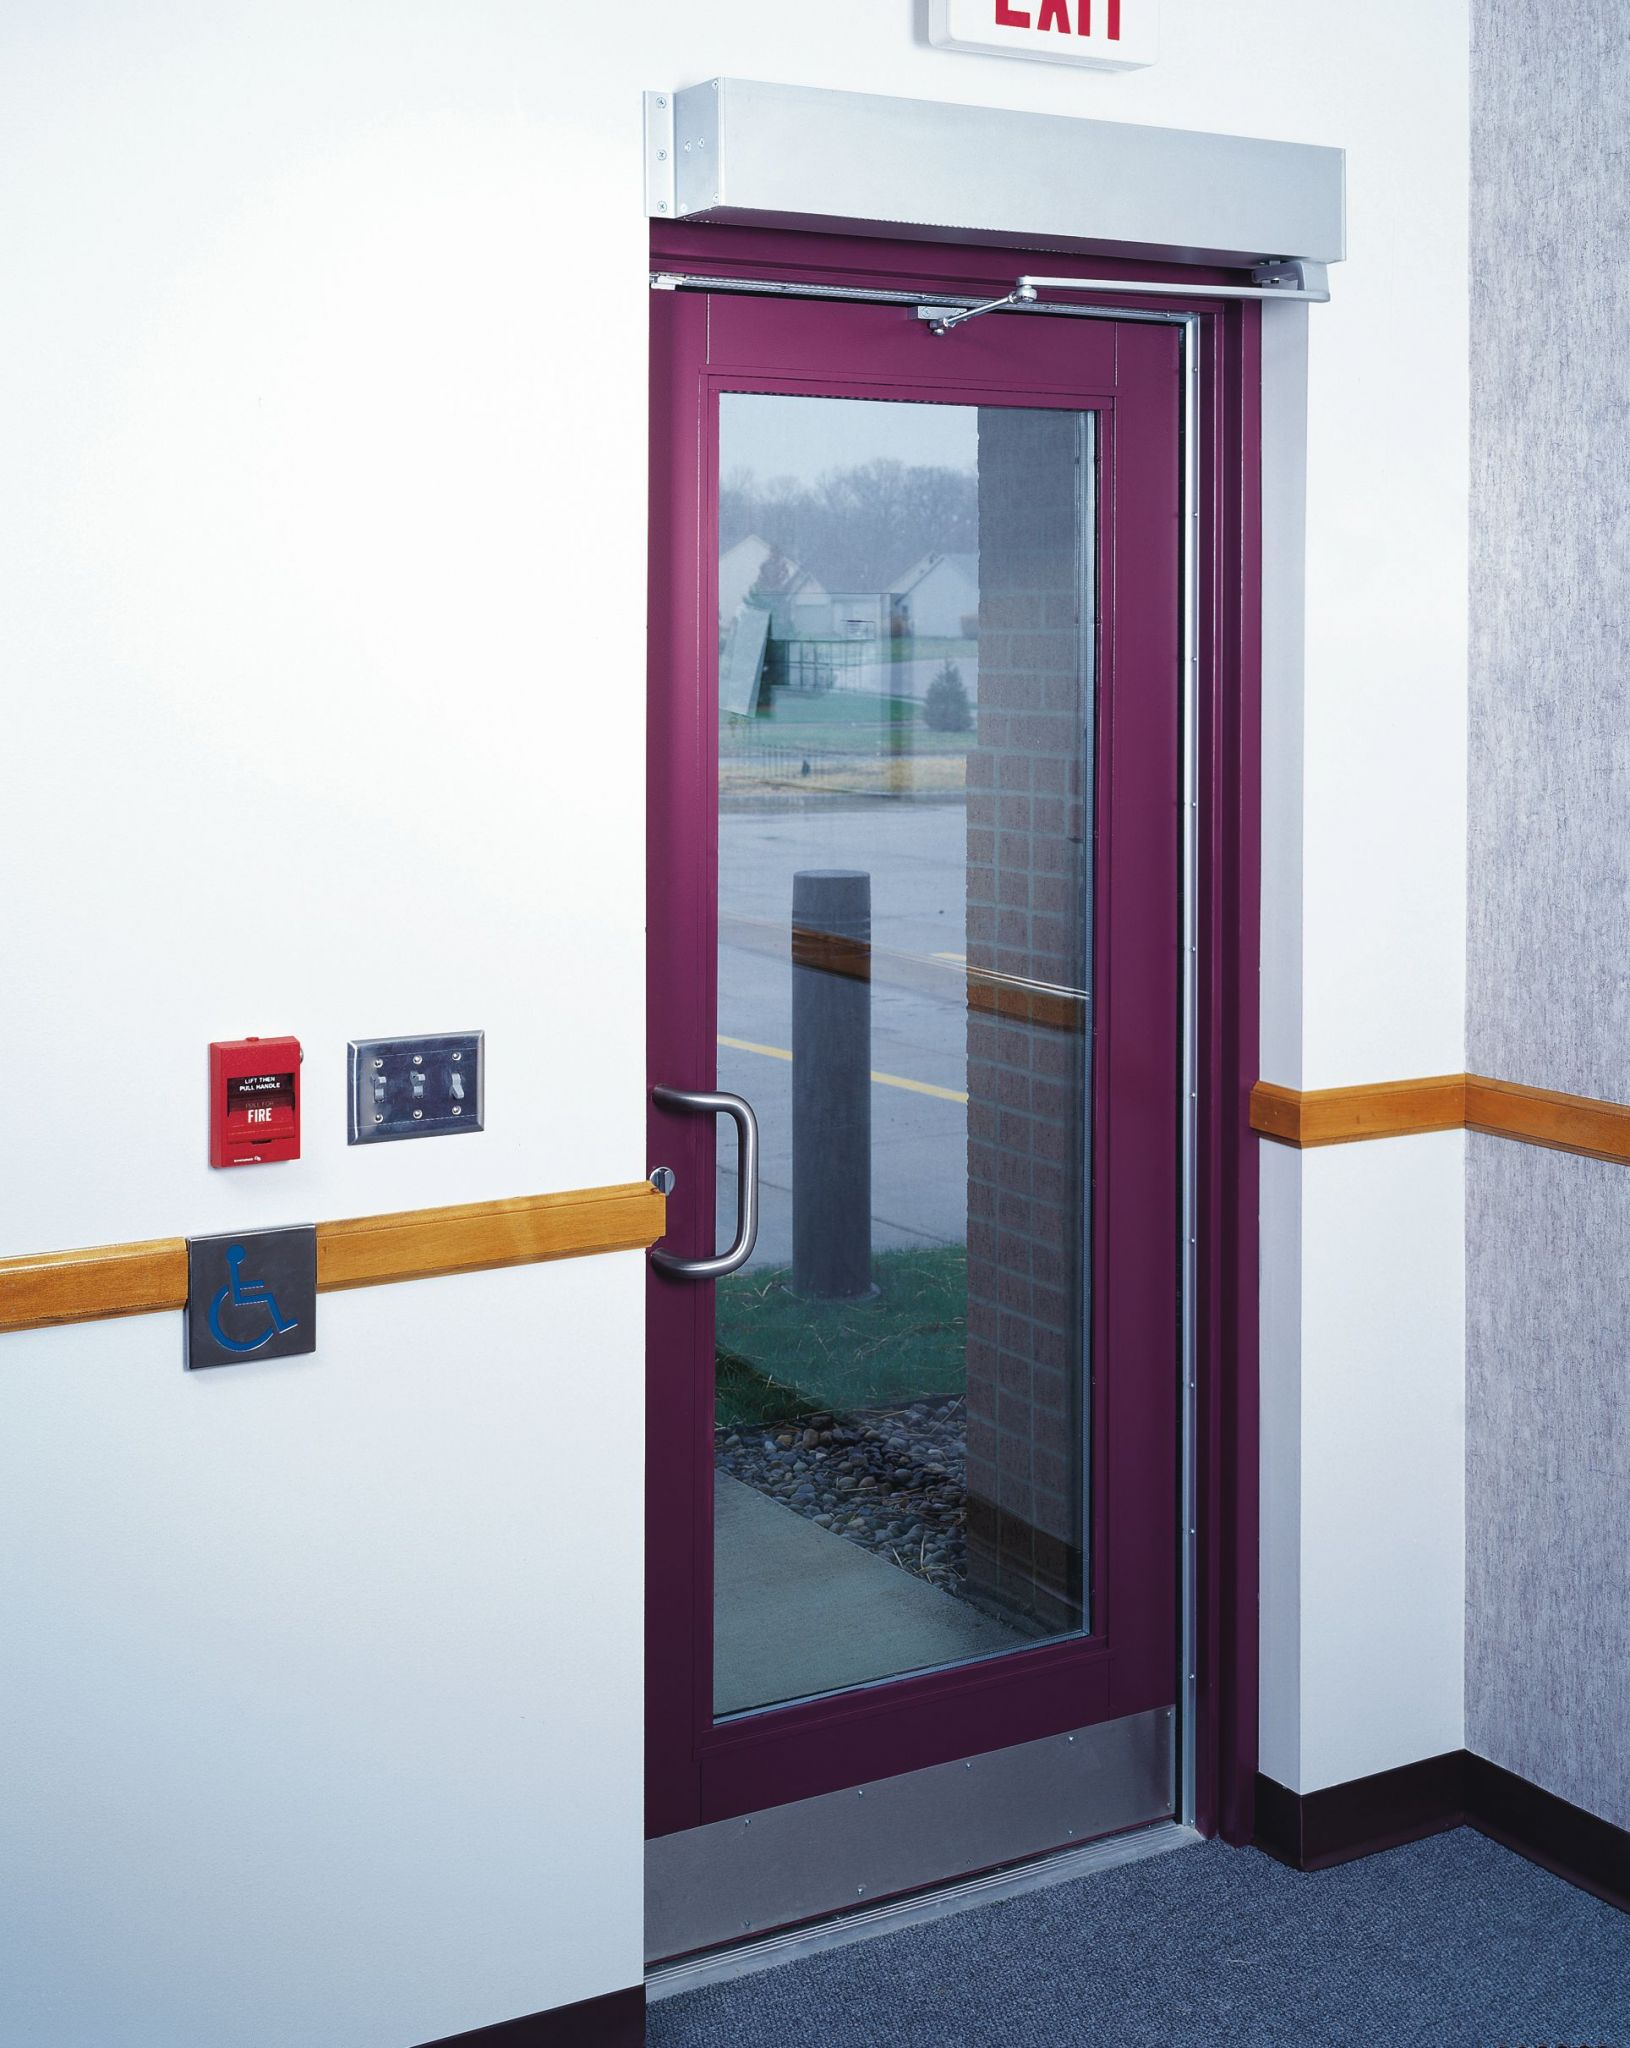 Understanding new accessibility requirements for doors